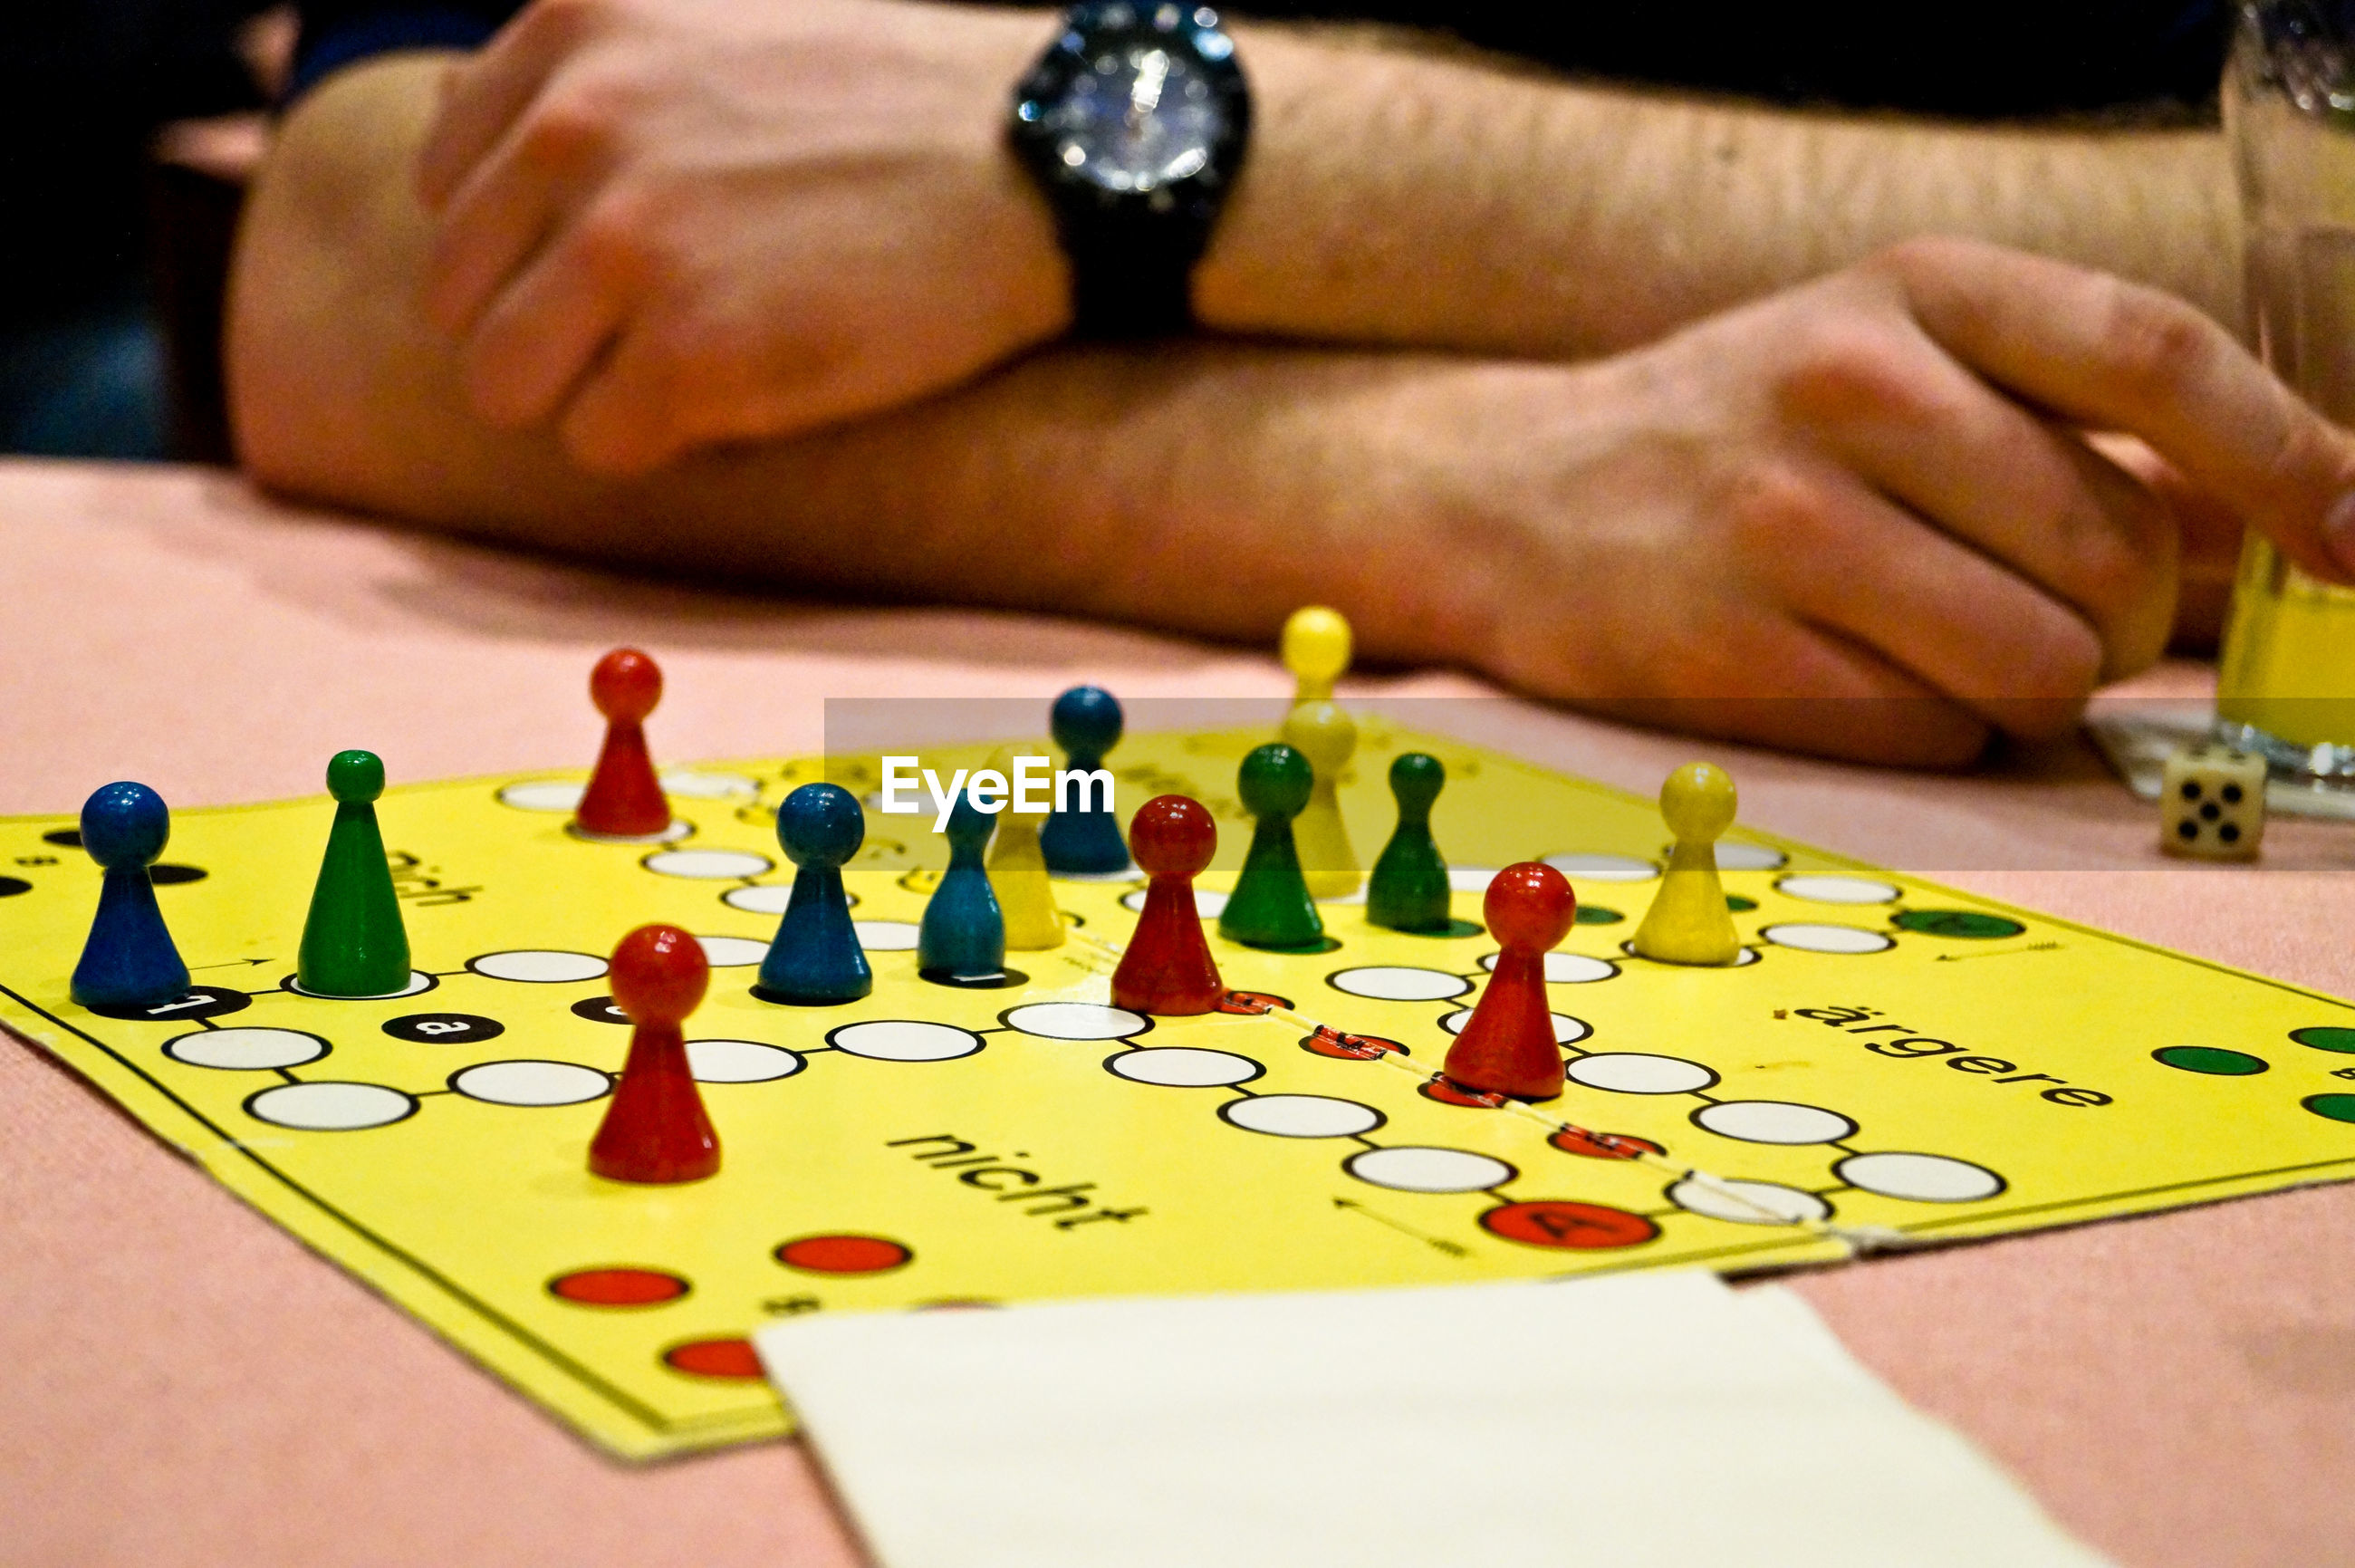 Cropped image of man playing board game